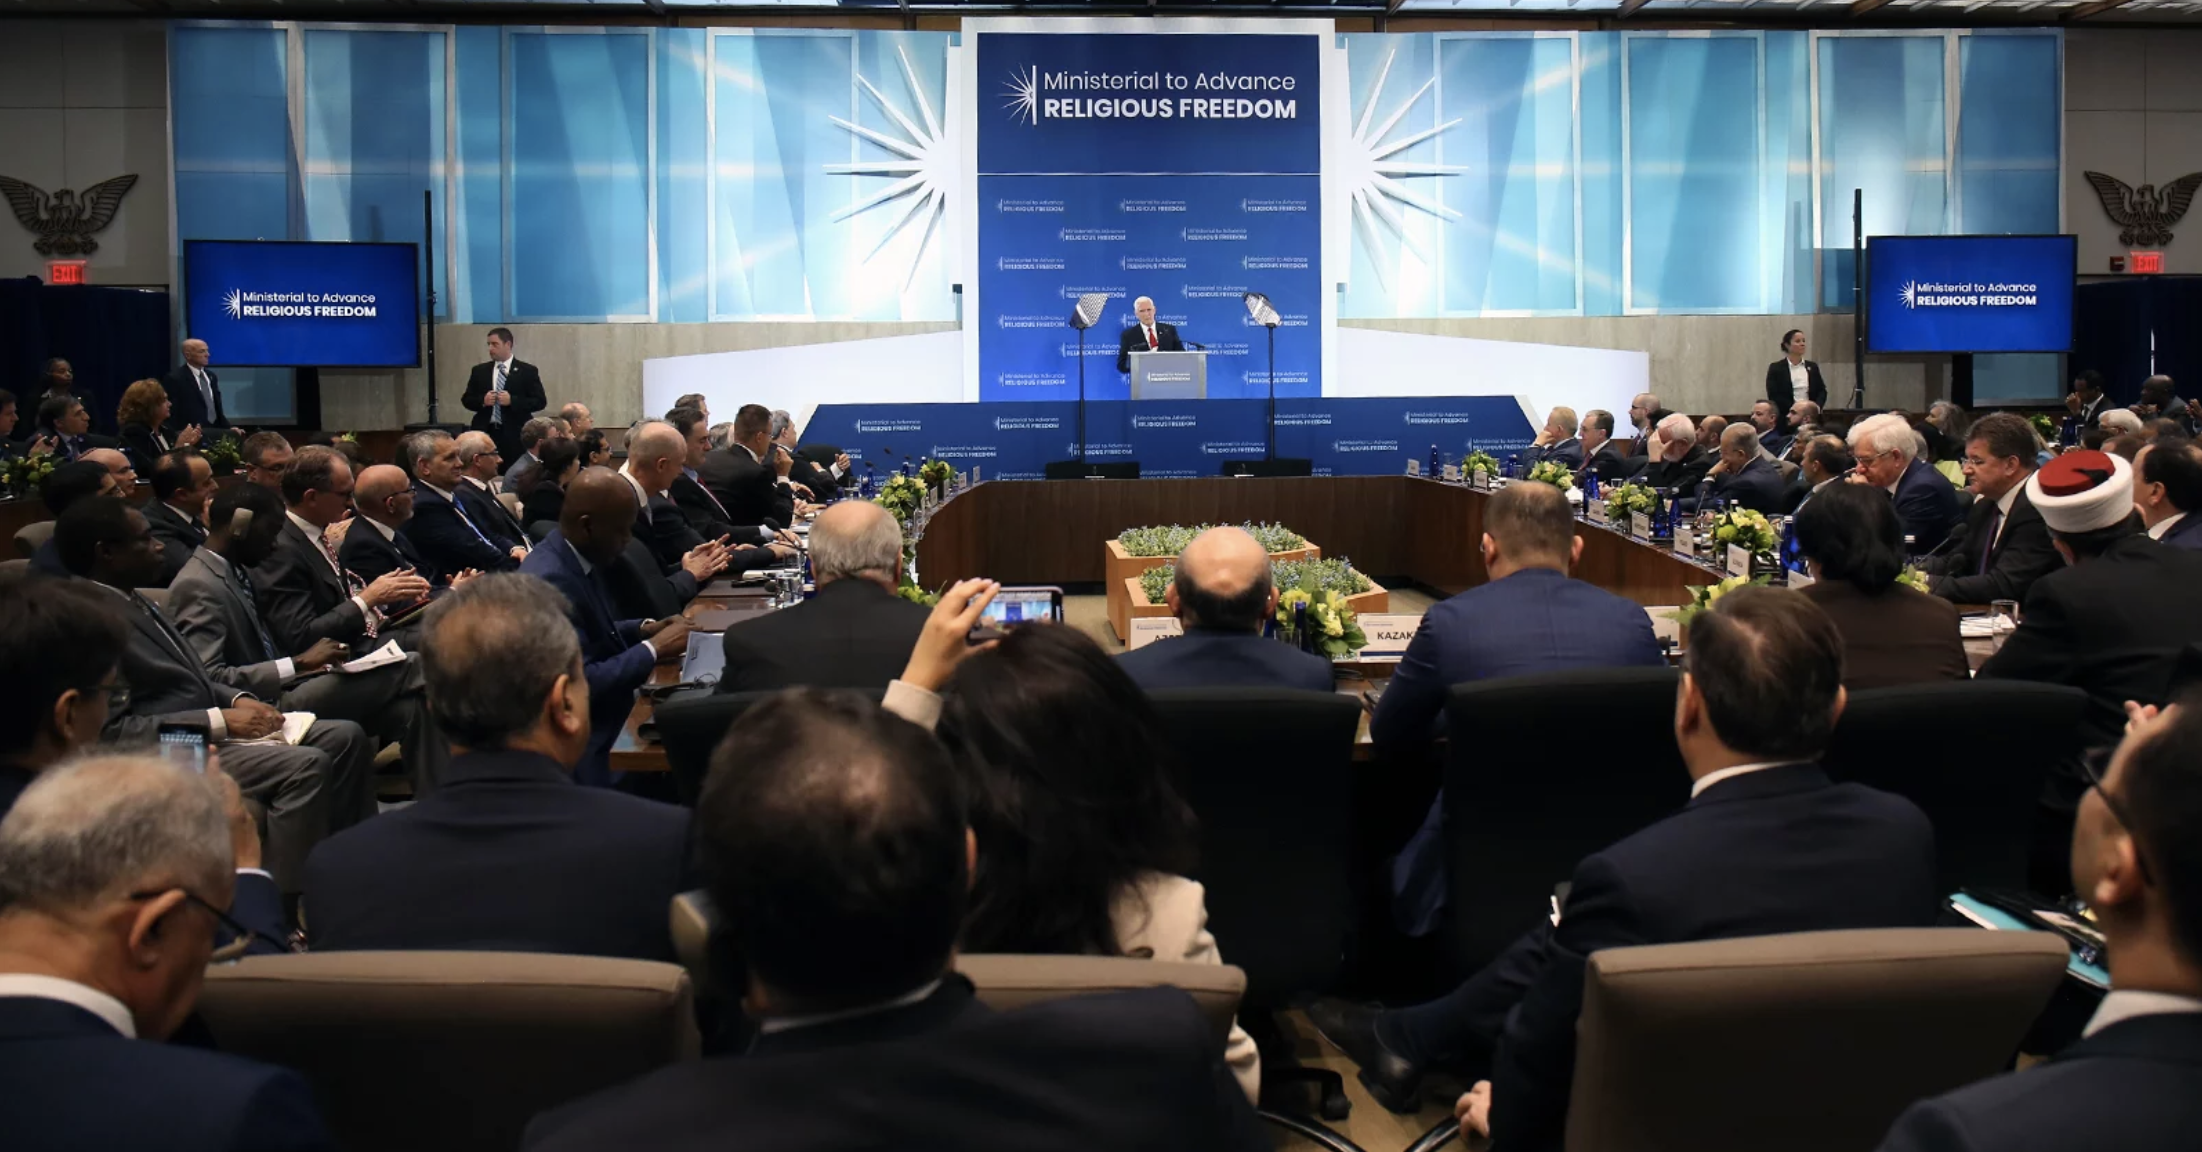 Vice President Mike Pence addresses delegates at the Ministerial to Advance Religious Freedom at the U.S. Department of State in Washington, D.C., on July 18, 2019. Photo by Ralph Alswang/State Department/Public Domain.